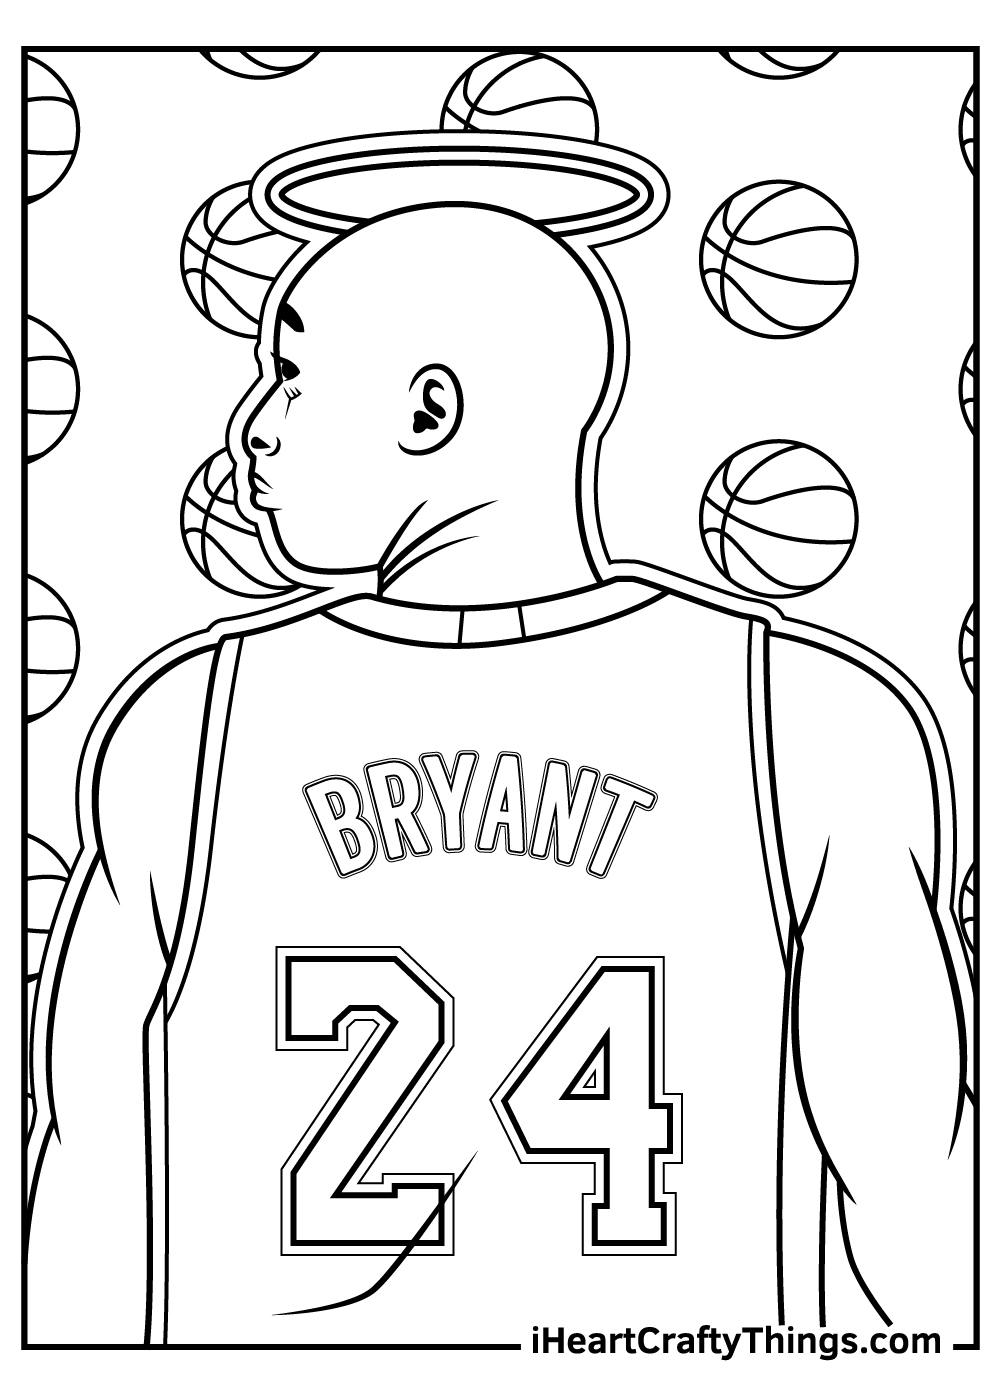 bryant NBA coloring pages free printable